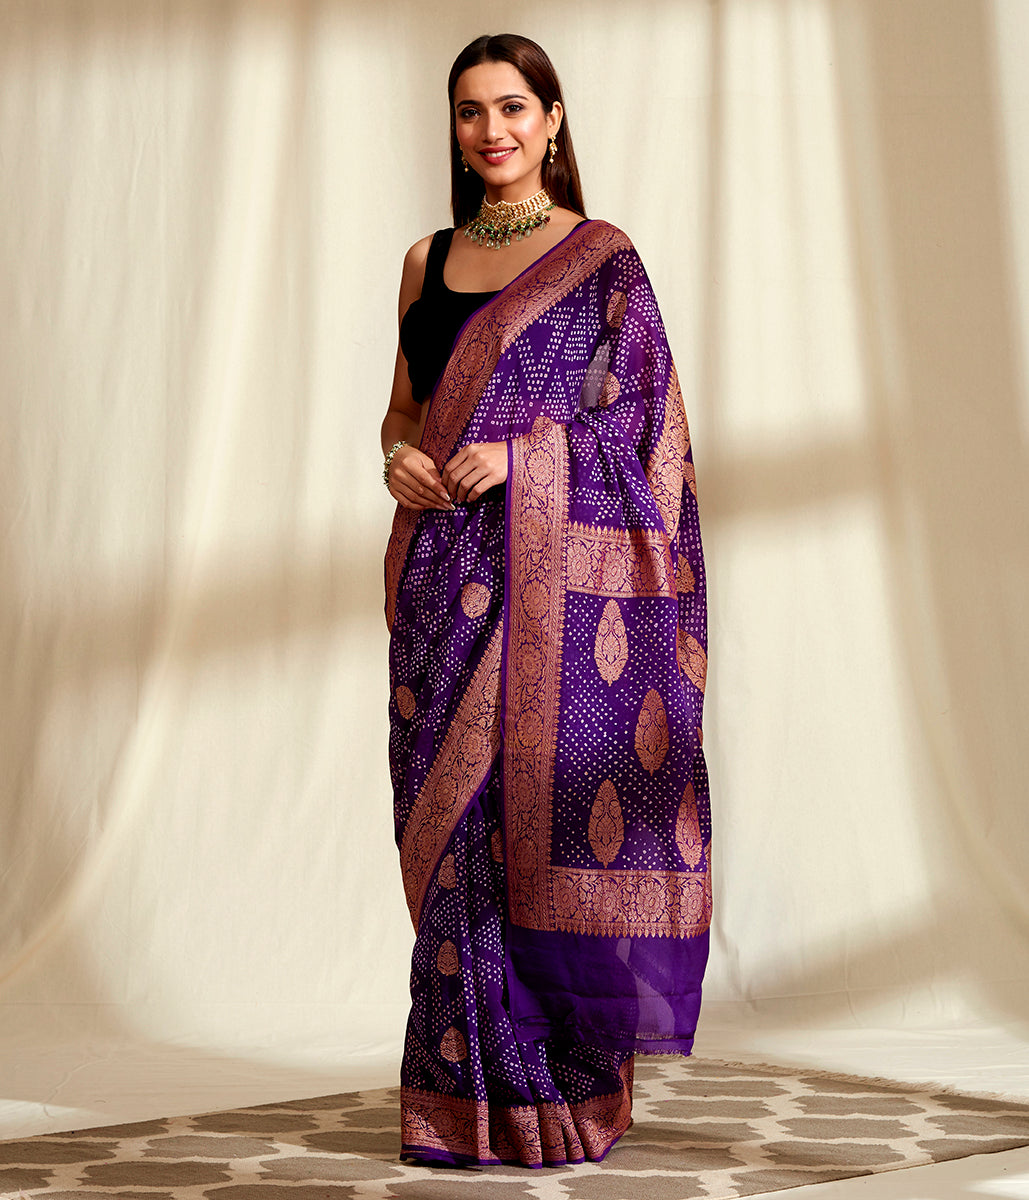 Handwoven Banarasi Bandhej Saree in Purple with Gold Zari Kadhwa Weave